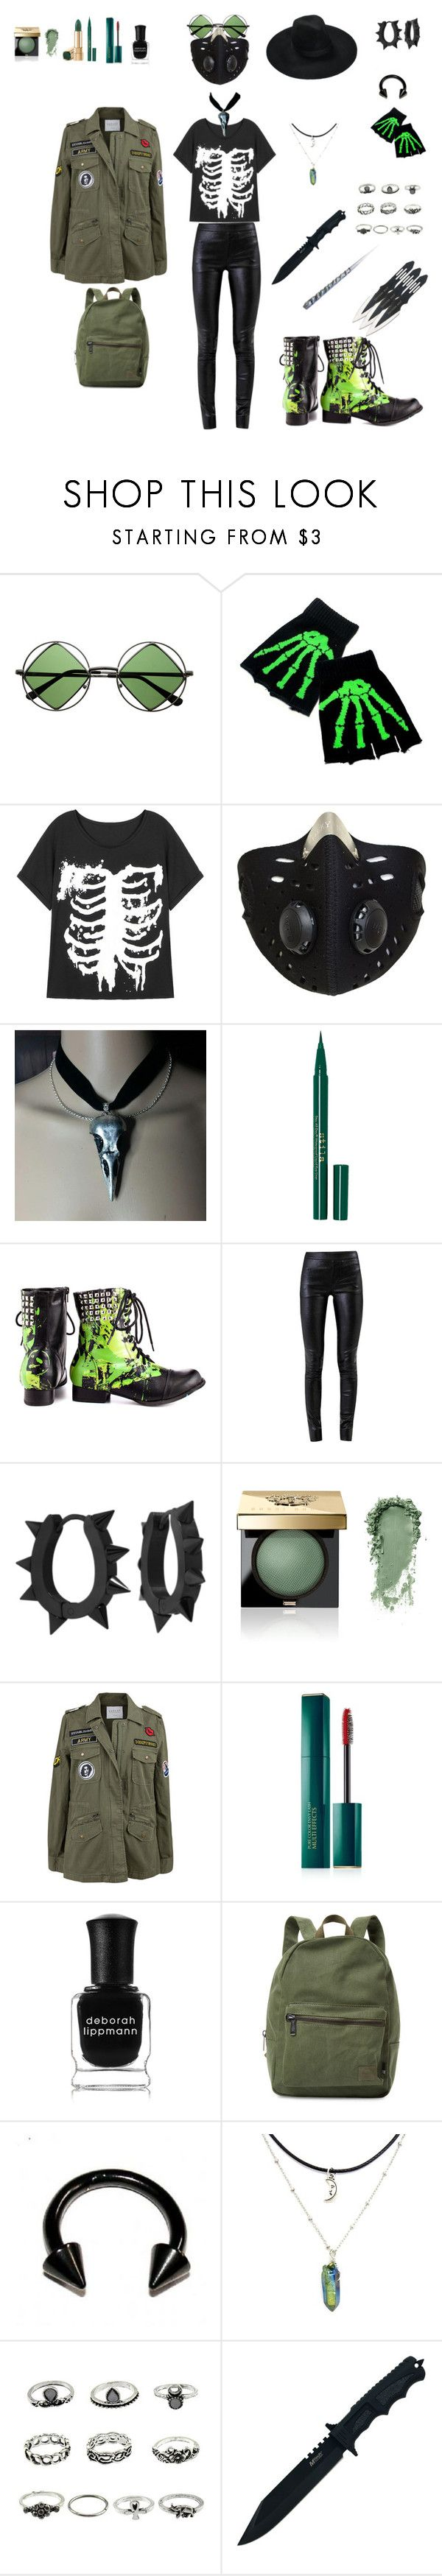 """Post apocalyptic witch? (Ro)"" by cutefoxboy ❤ liked on Polyvore featuring Retrò, Stila, Abbey Dawn, Helmut Lang, West Coast Jewelry, Bobbi Brown Cosmetics, Velvet by Graham & Spencer, Estée Lauder, Deborah Lippmann and Herschel Supply Co."